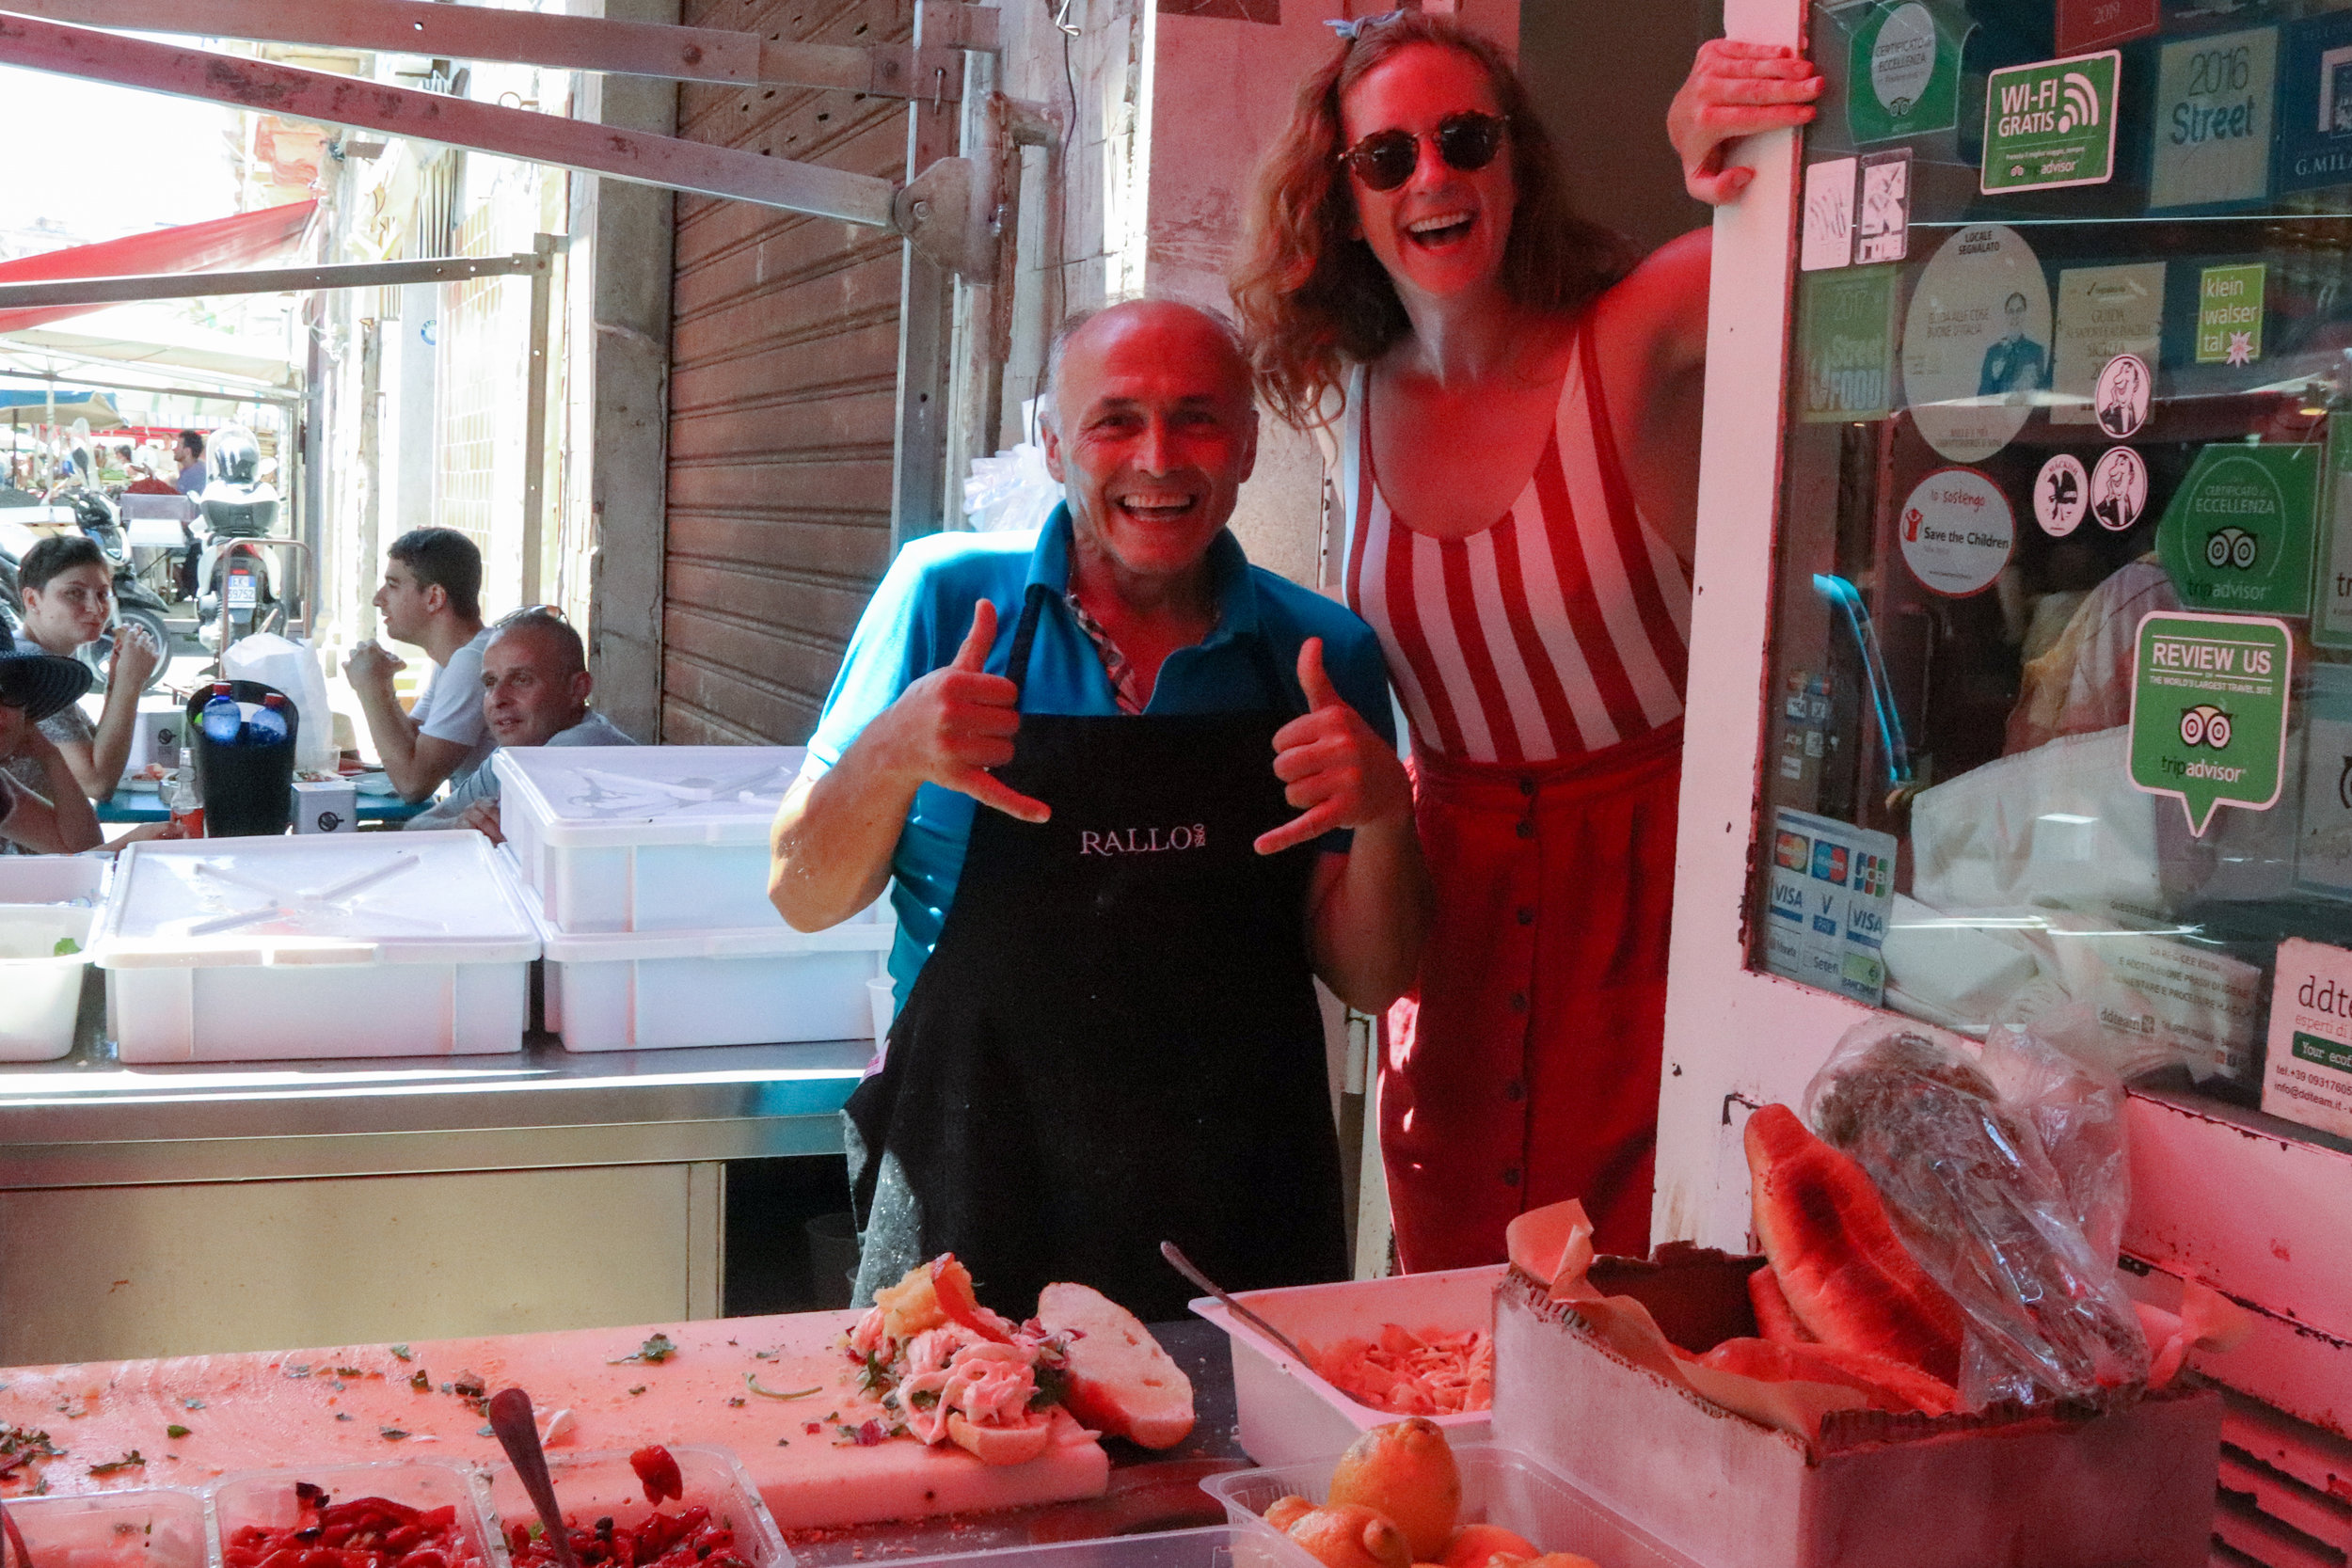 Siracusa Market - the best sandwiches are made by this guy!